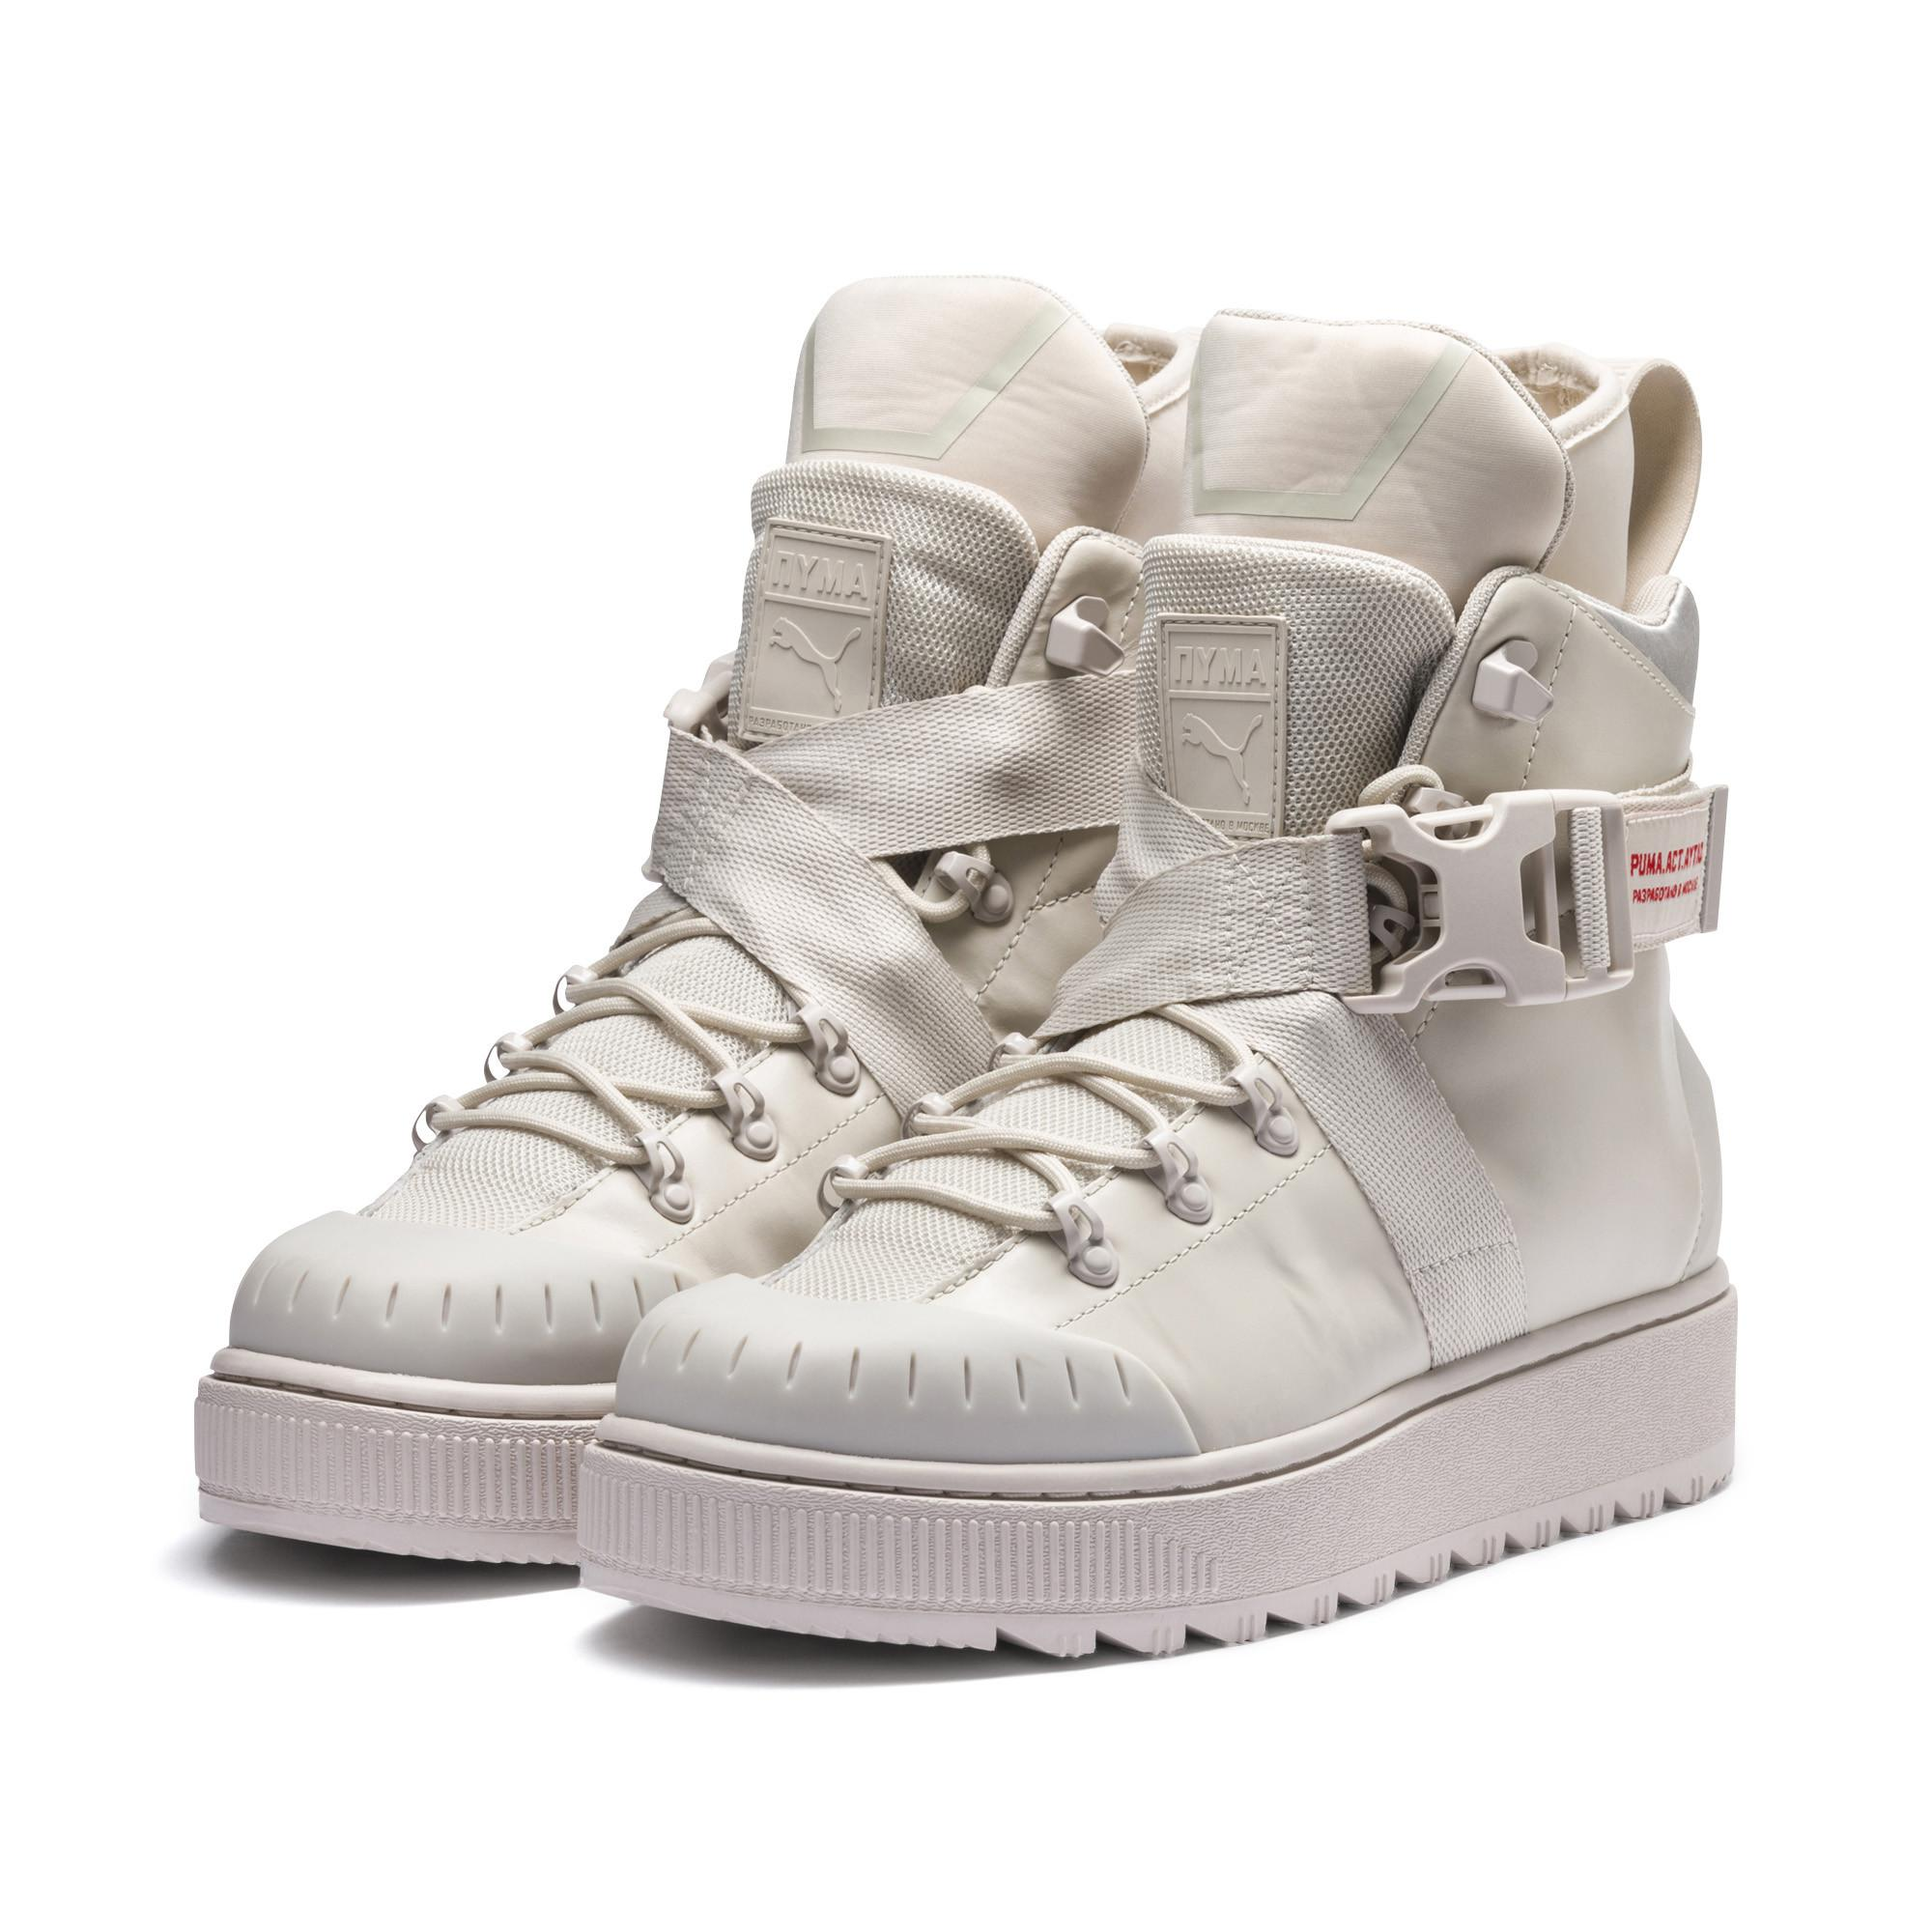 aa7e6bb8efd3f PUMA Multicolor X Outlaw Moscow Ren Boots